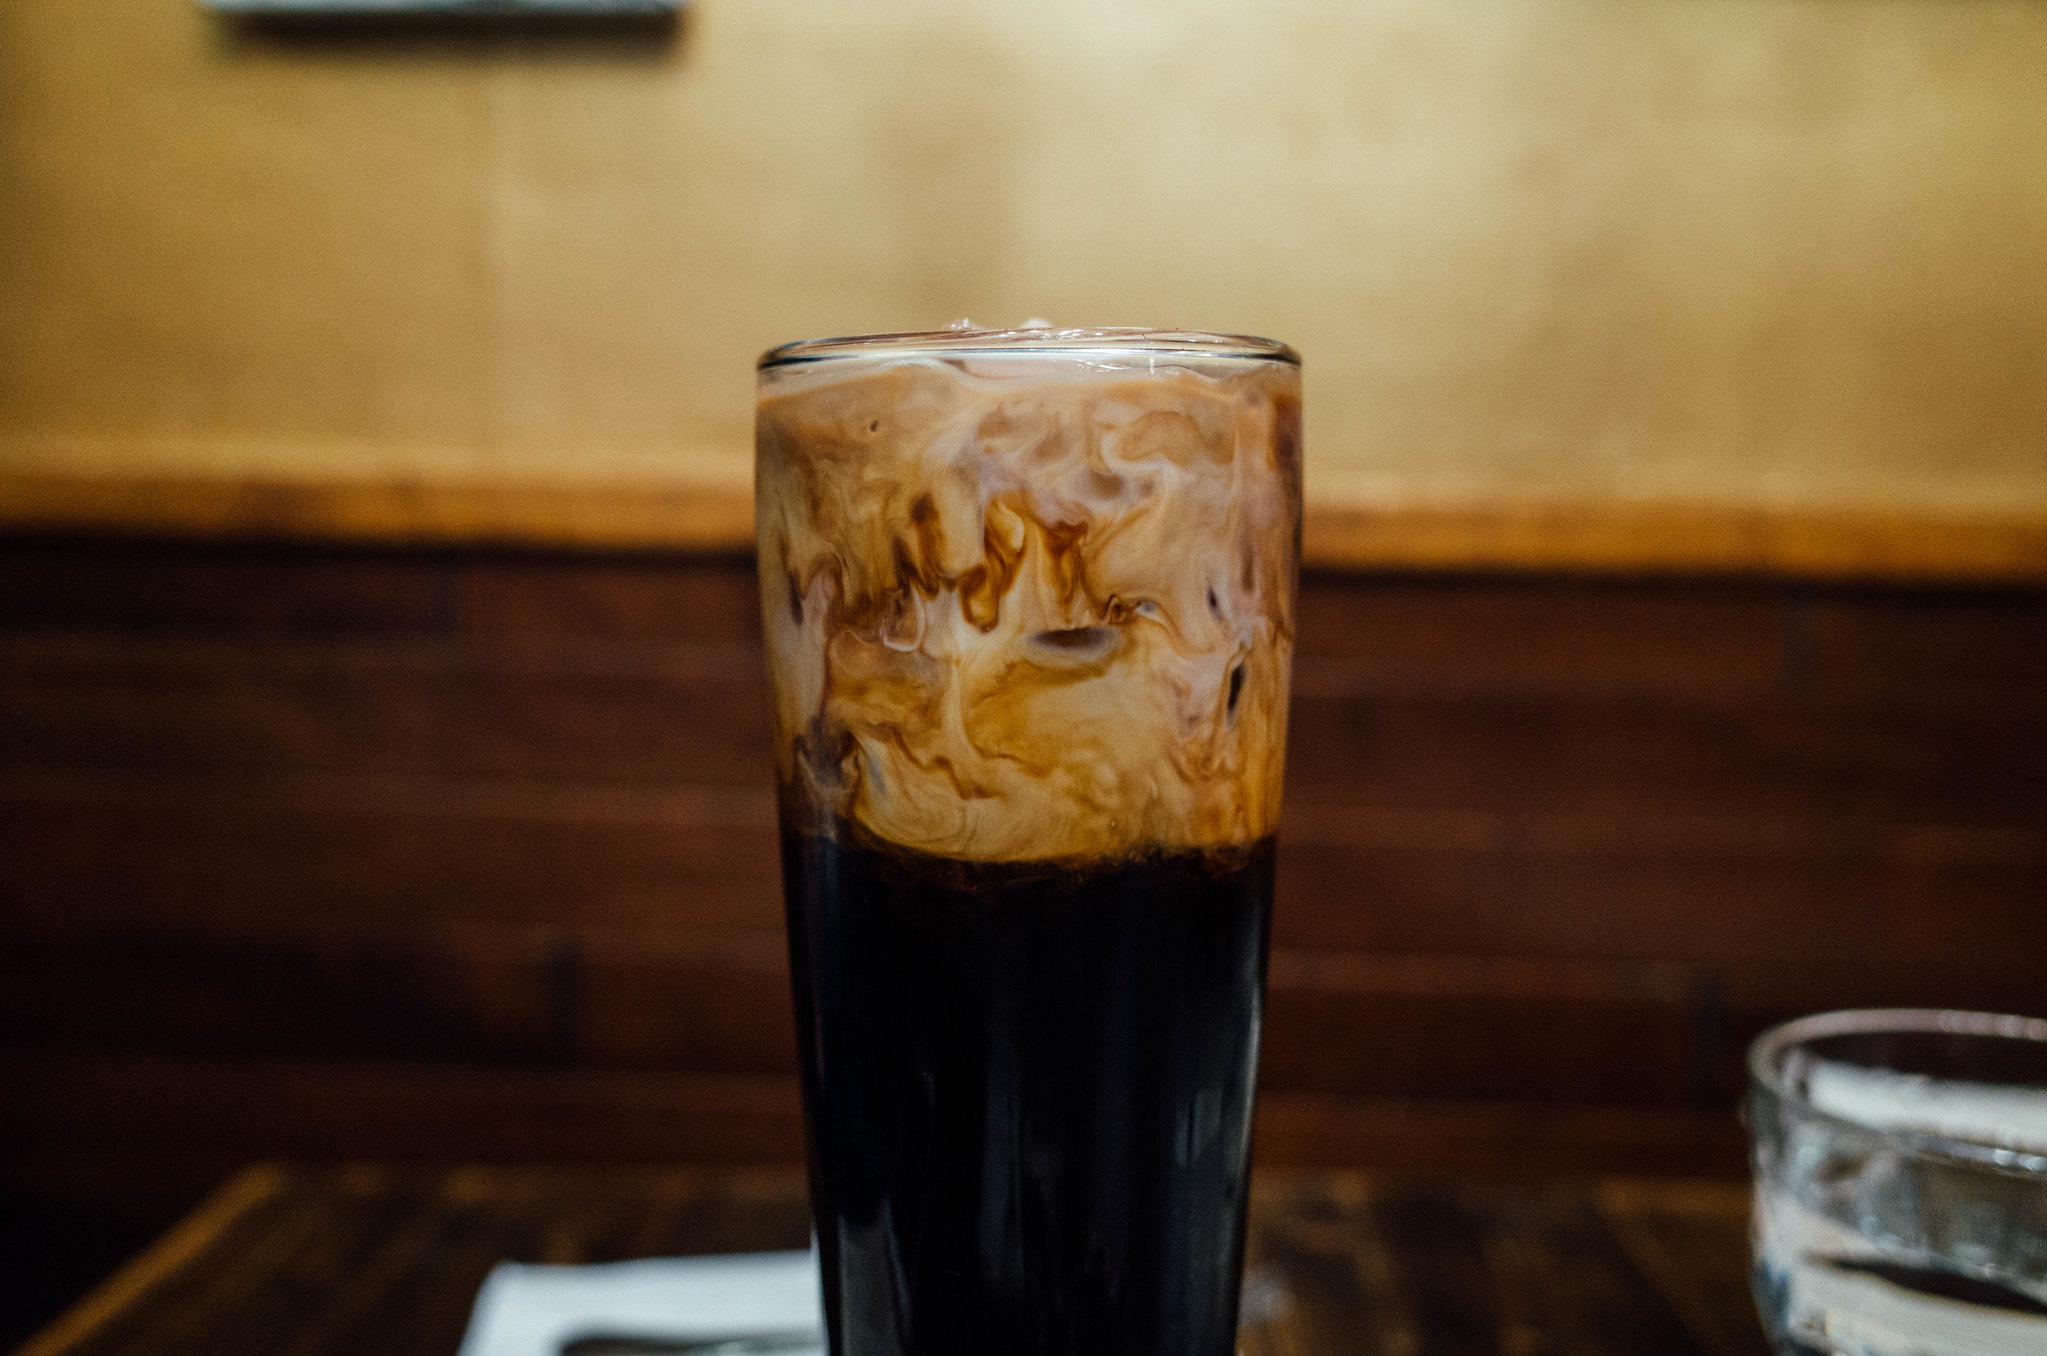 a glass of iced coffee and milk